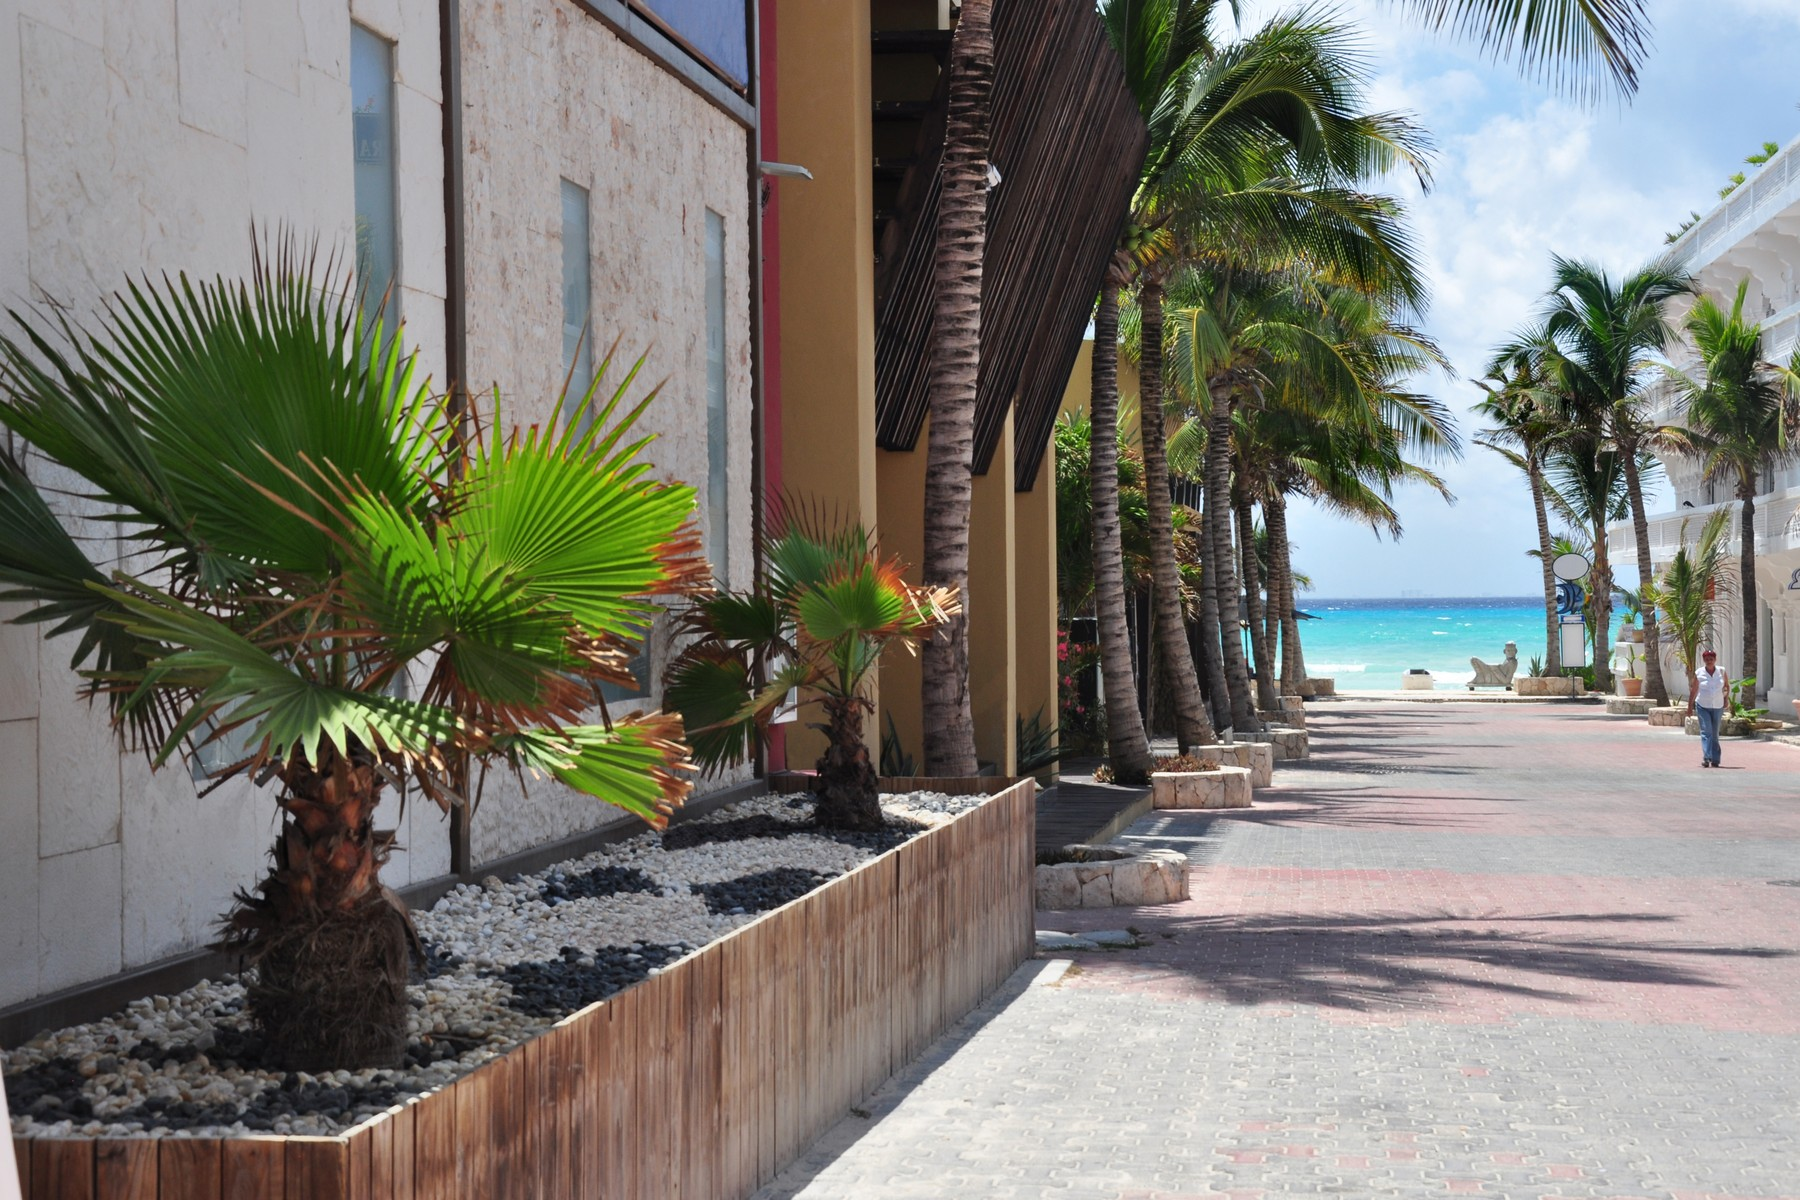 Land for Sale at DEVELOPMENT PARCEL IN PREMIUM LOCATION IN DOWNTOWN Calle 8 entre 5ta Av. y la playa Playa Del Carmen, Quintana Roo 77710 Mexico